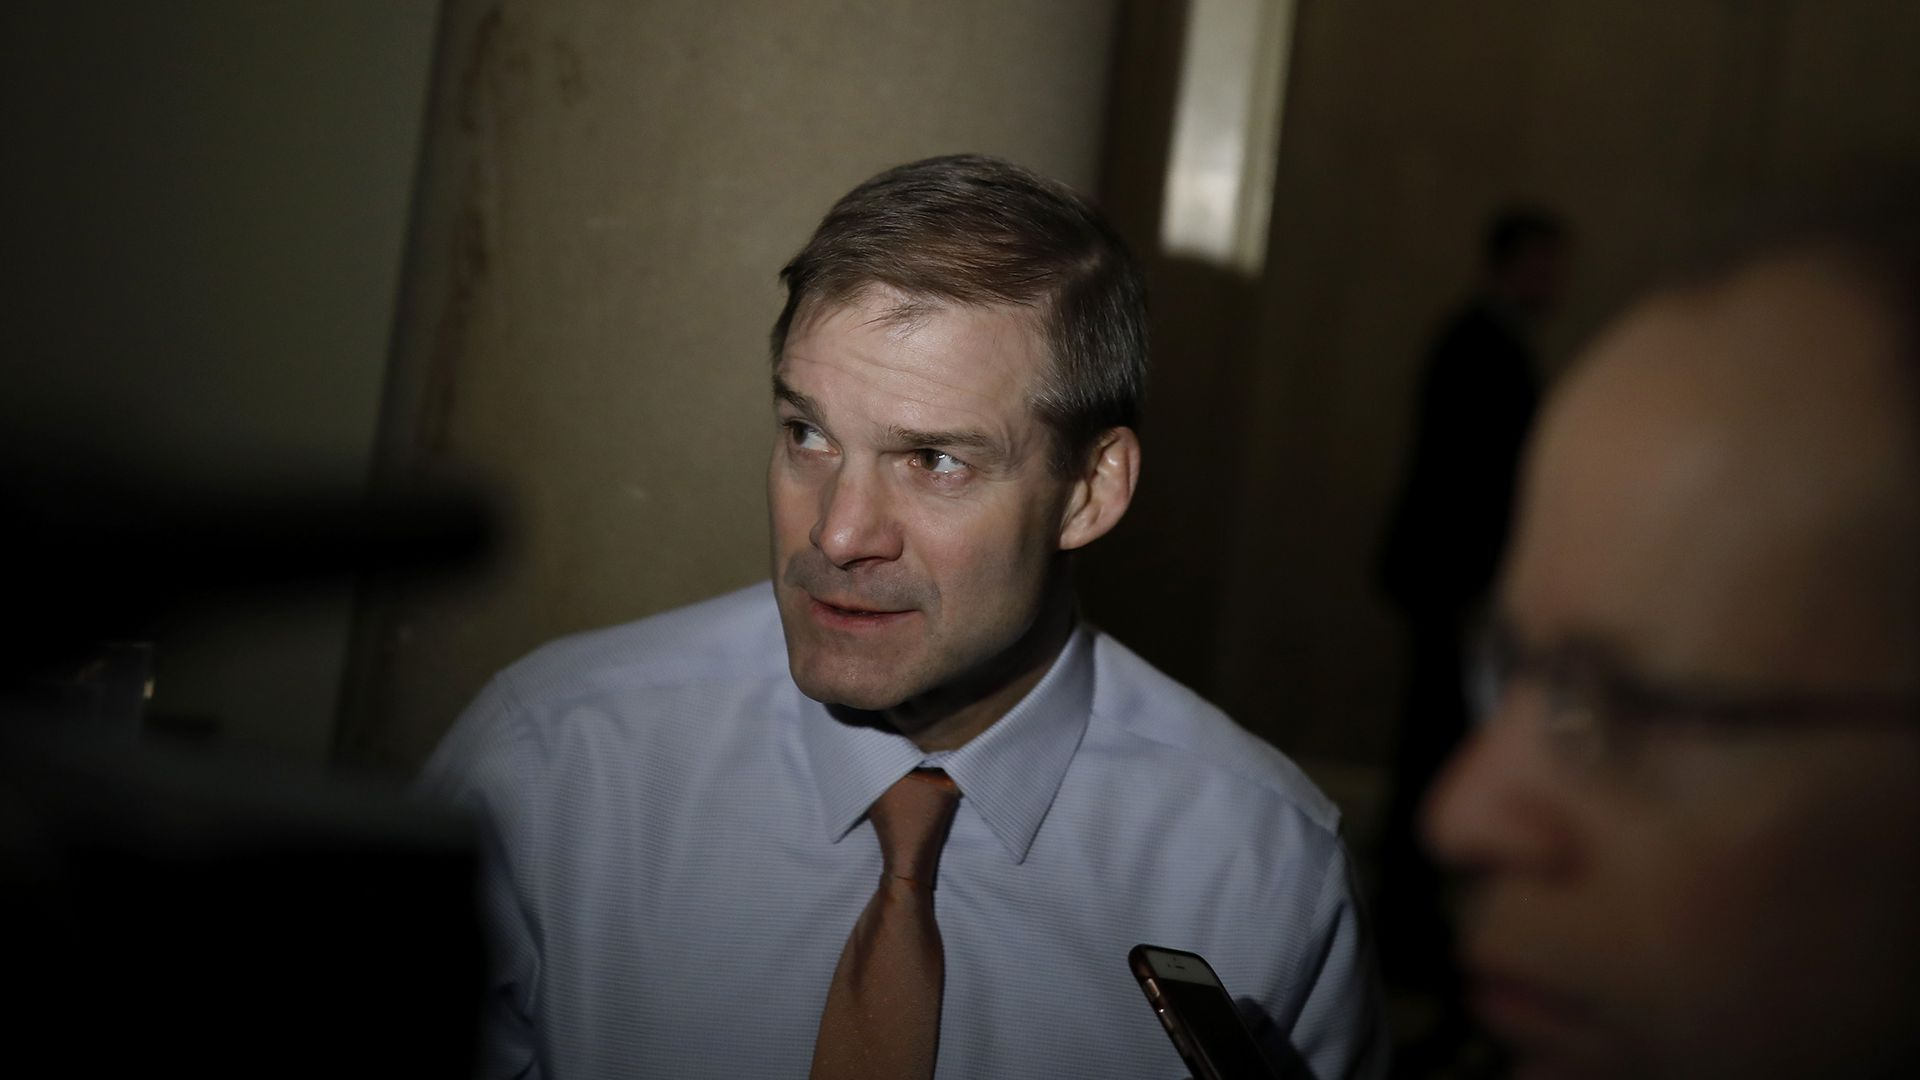 Jim Jordan highlighted in the center of a dark shadow